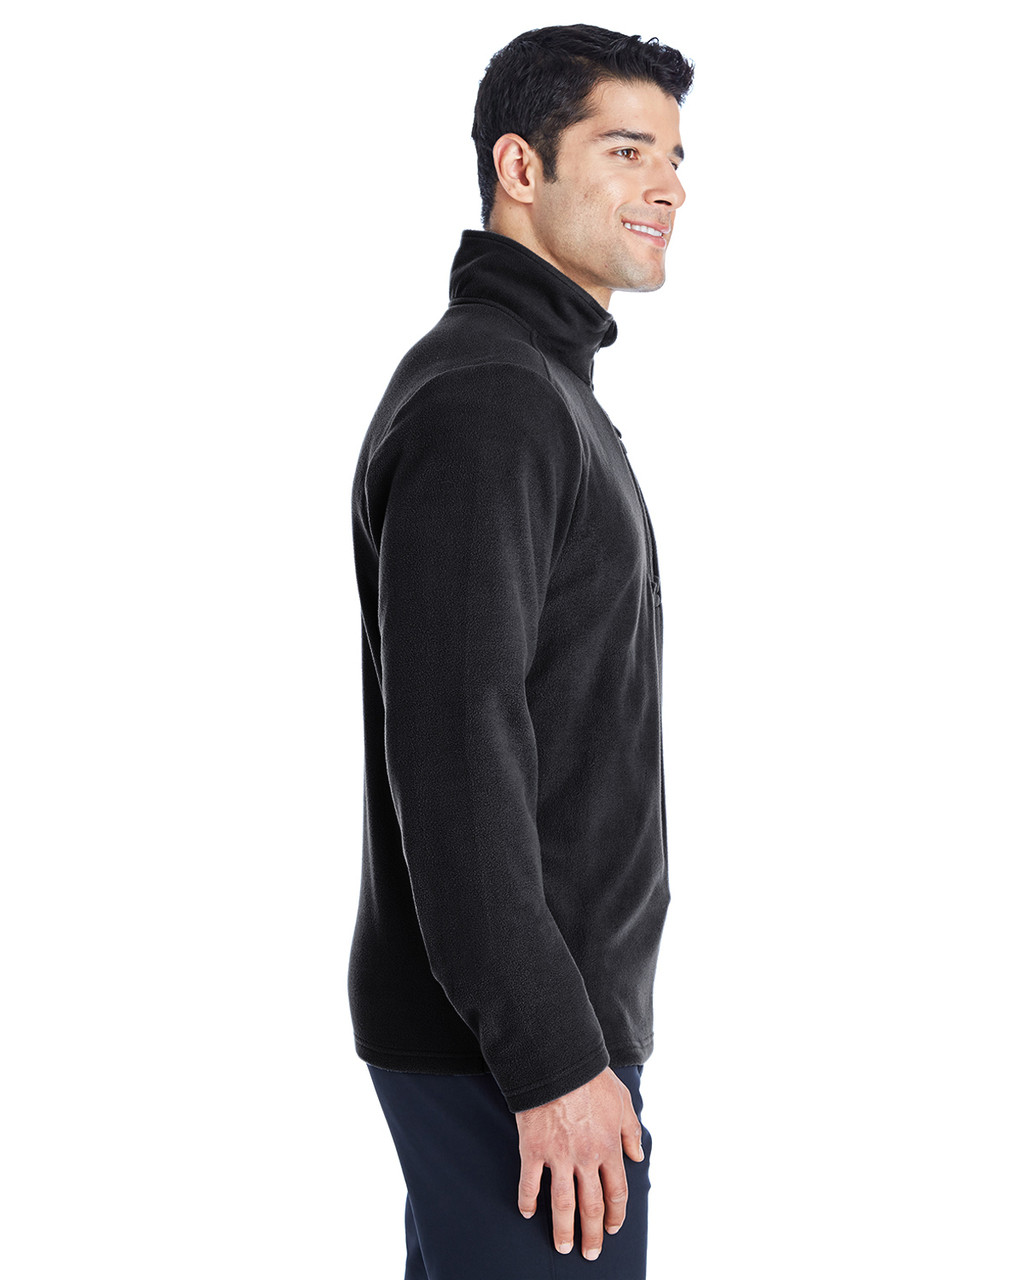 Black/Red, Side -  187332 Spyder Men's Transport Quarter-Zip Fleece Pullover | BlankClothing.ca